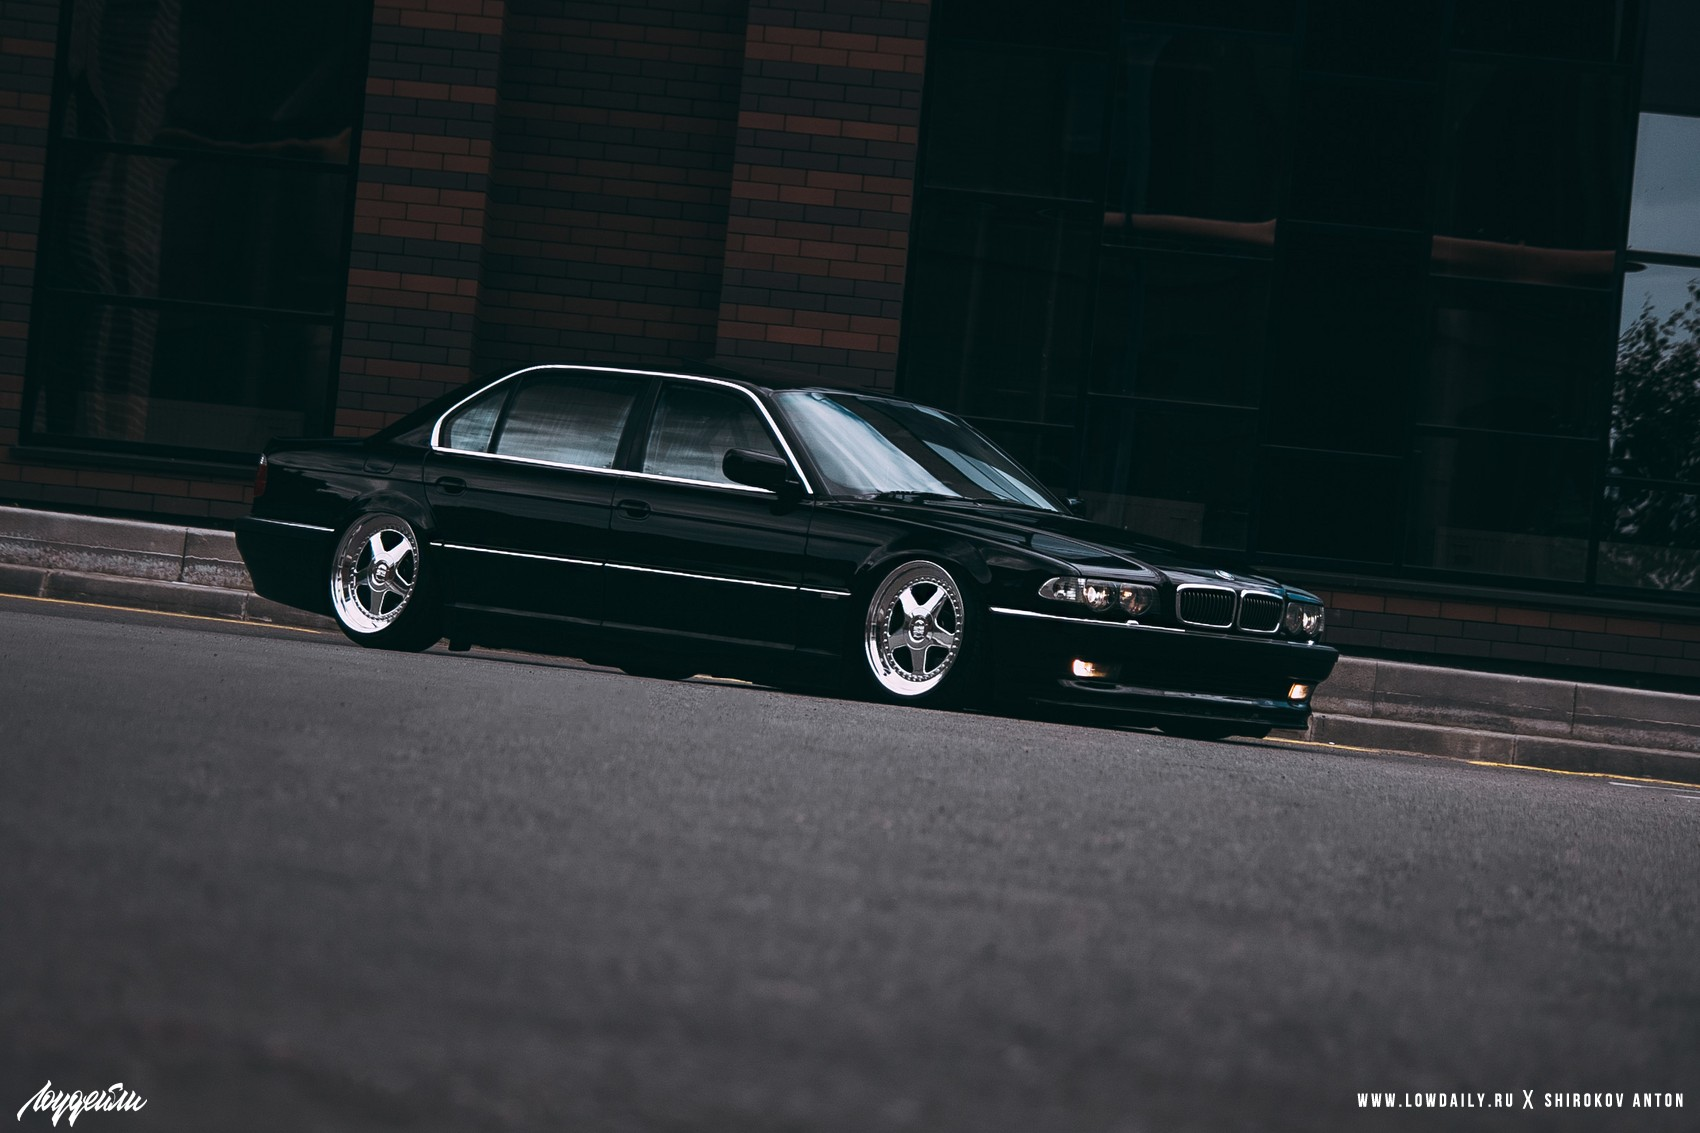 BMW E38 Lowdaily _MG_7007